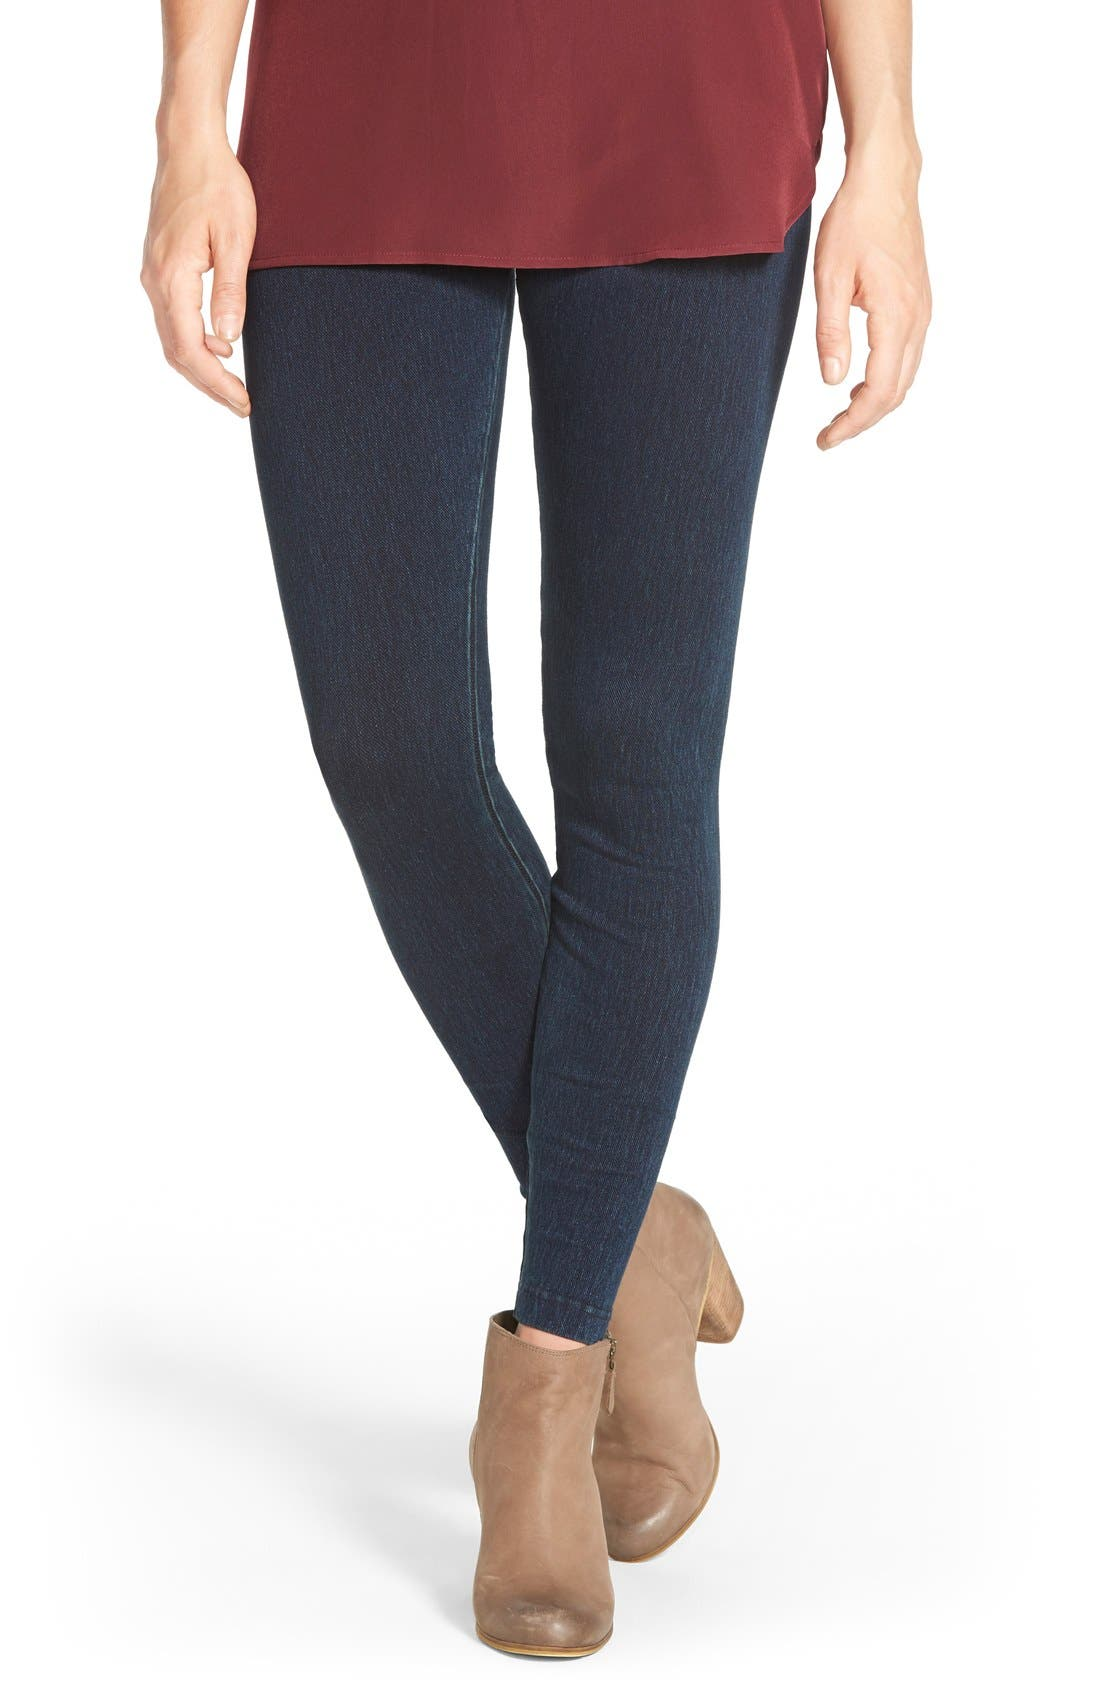 Alternate Image 1 Selected - Lyssé High Waist Denim Leggings